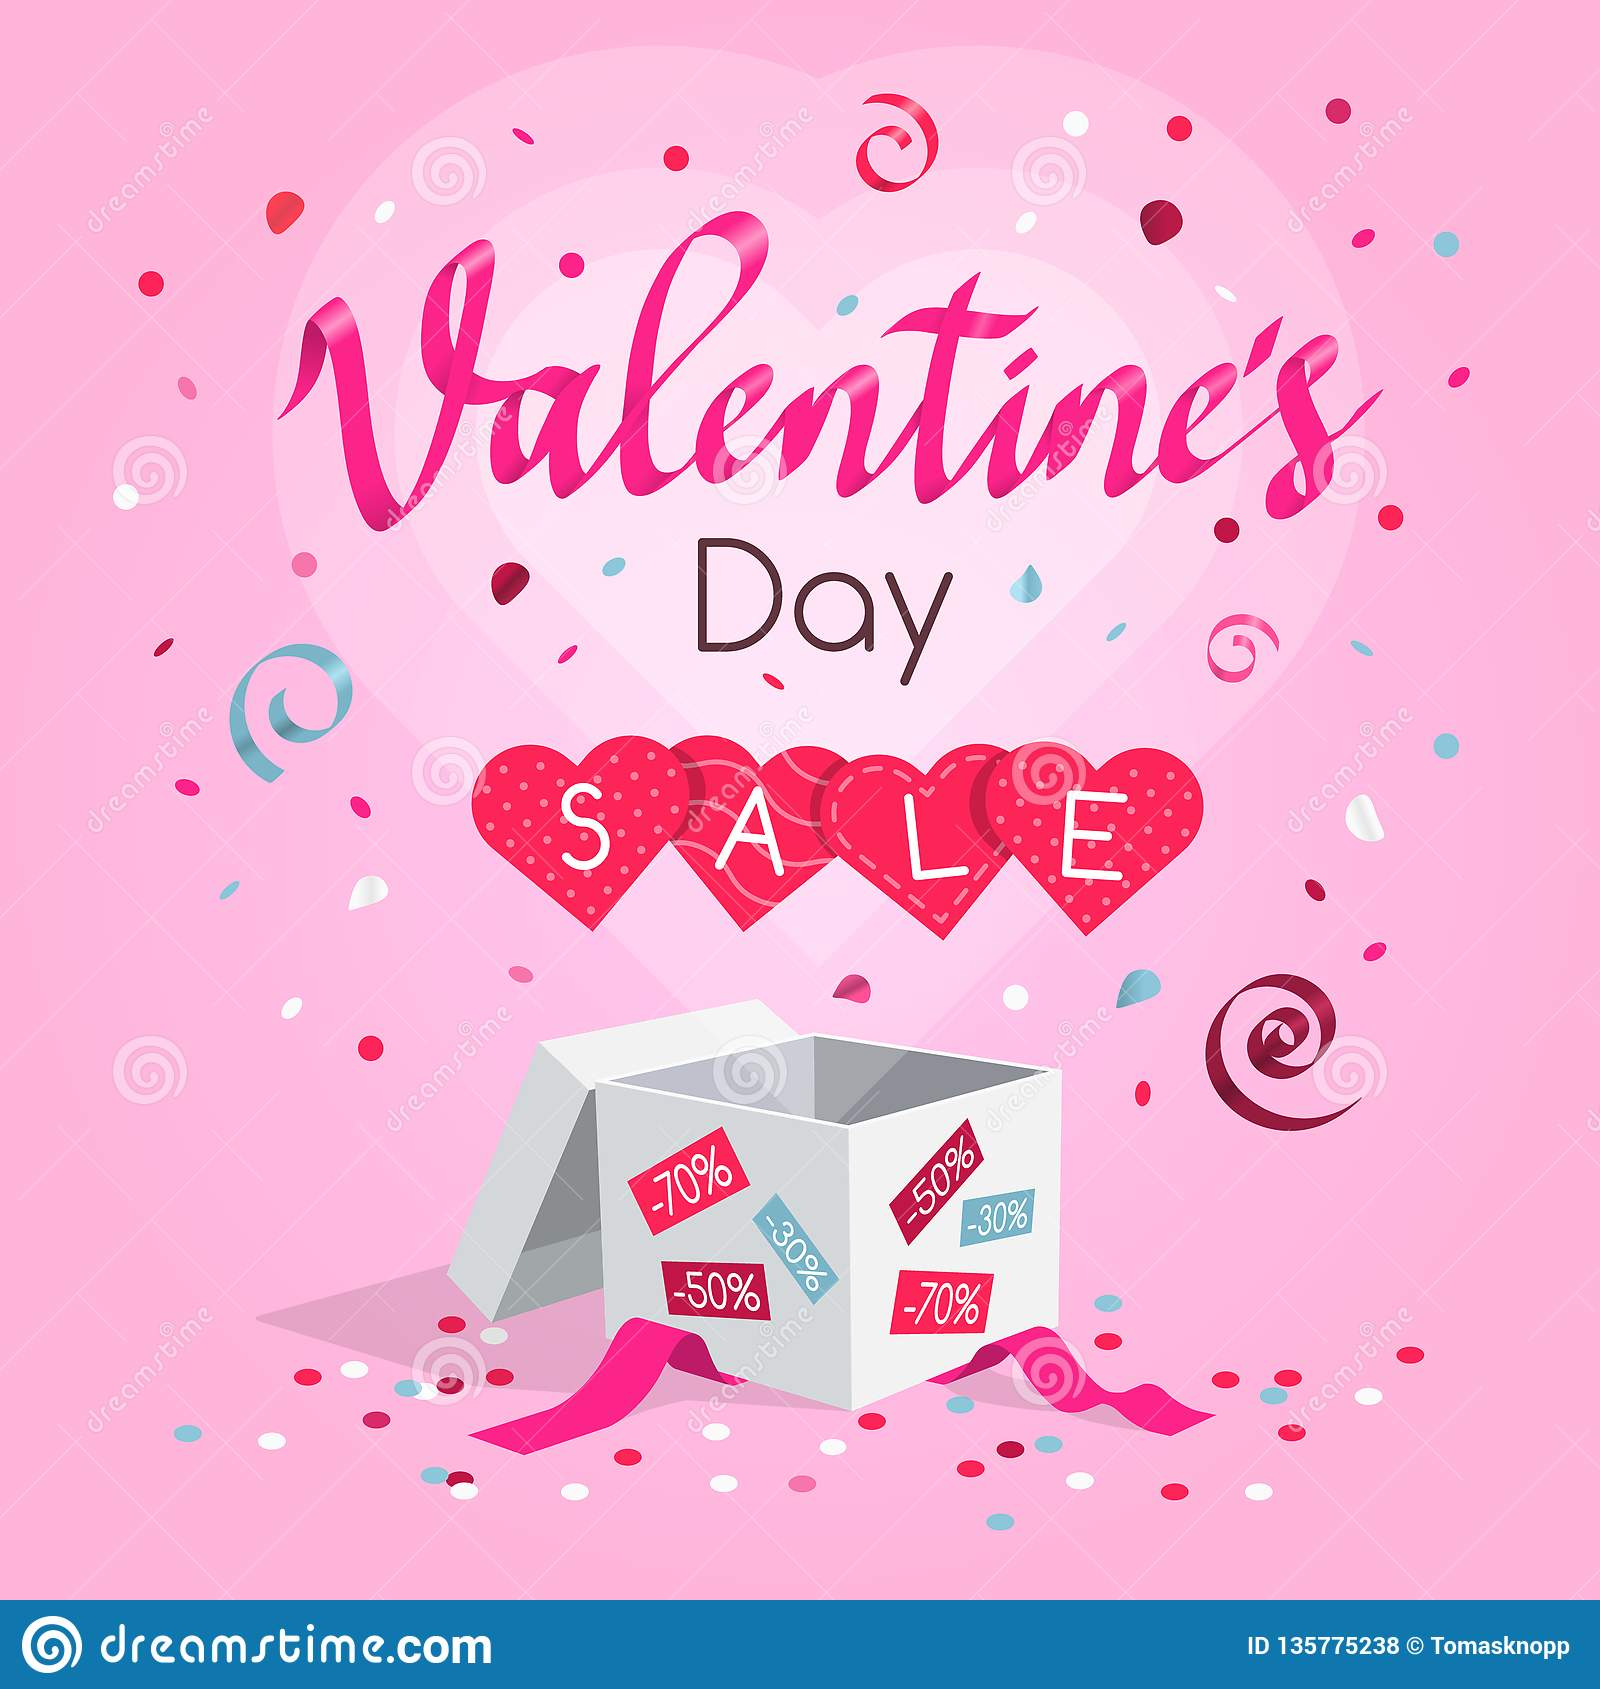 Special Valentine`s day sale symbol with gift, flying hearts, confetti and rose petals